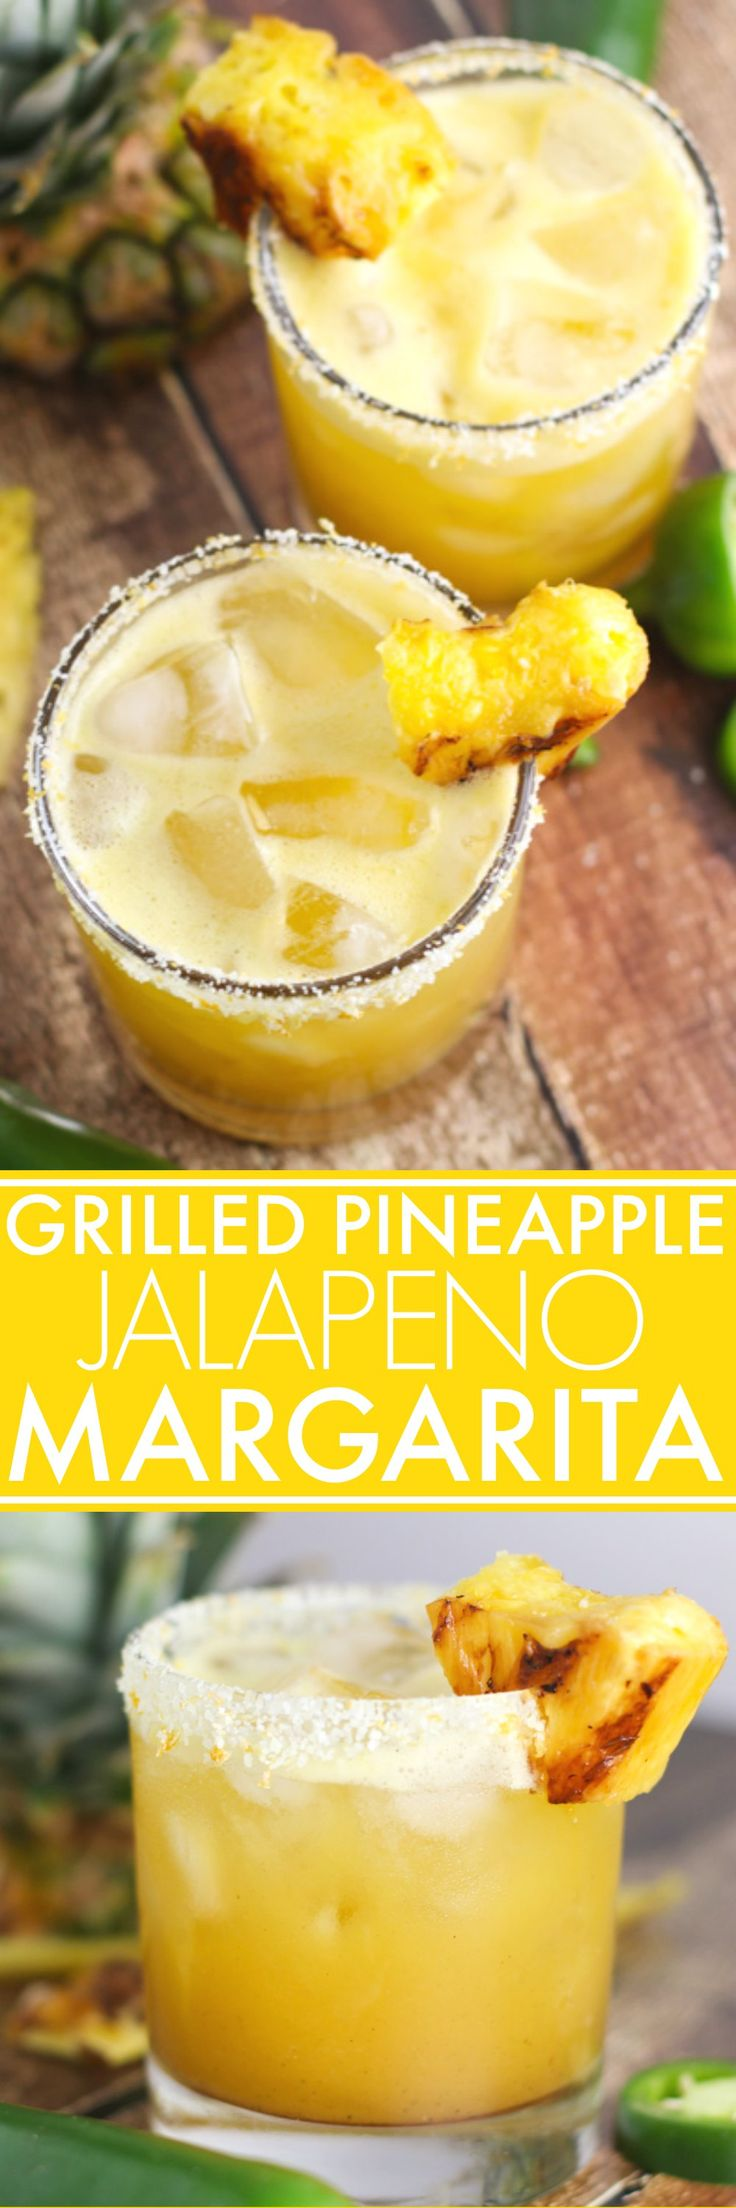 Grilled Pineapple Jalapeno Margaritas are the perfect blend of sweet, spicy, and smoky. Caramelized grilled pineapple combines with jalapeno infused tequila & a splash of vanilla. | platingsandpairings.com